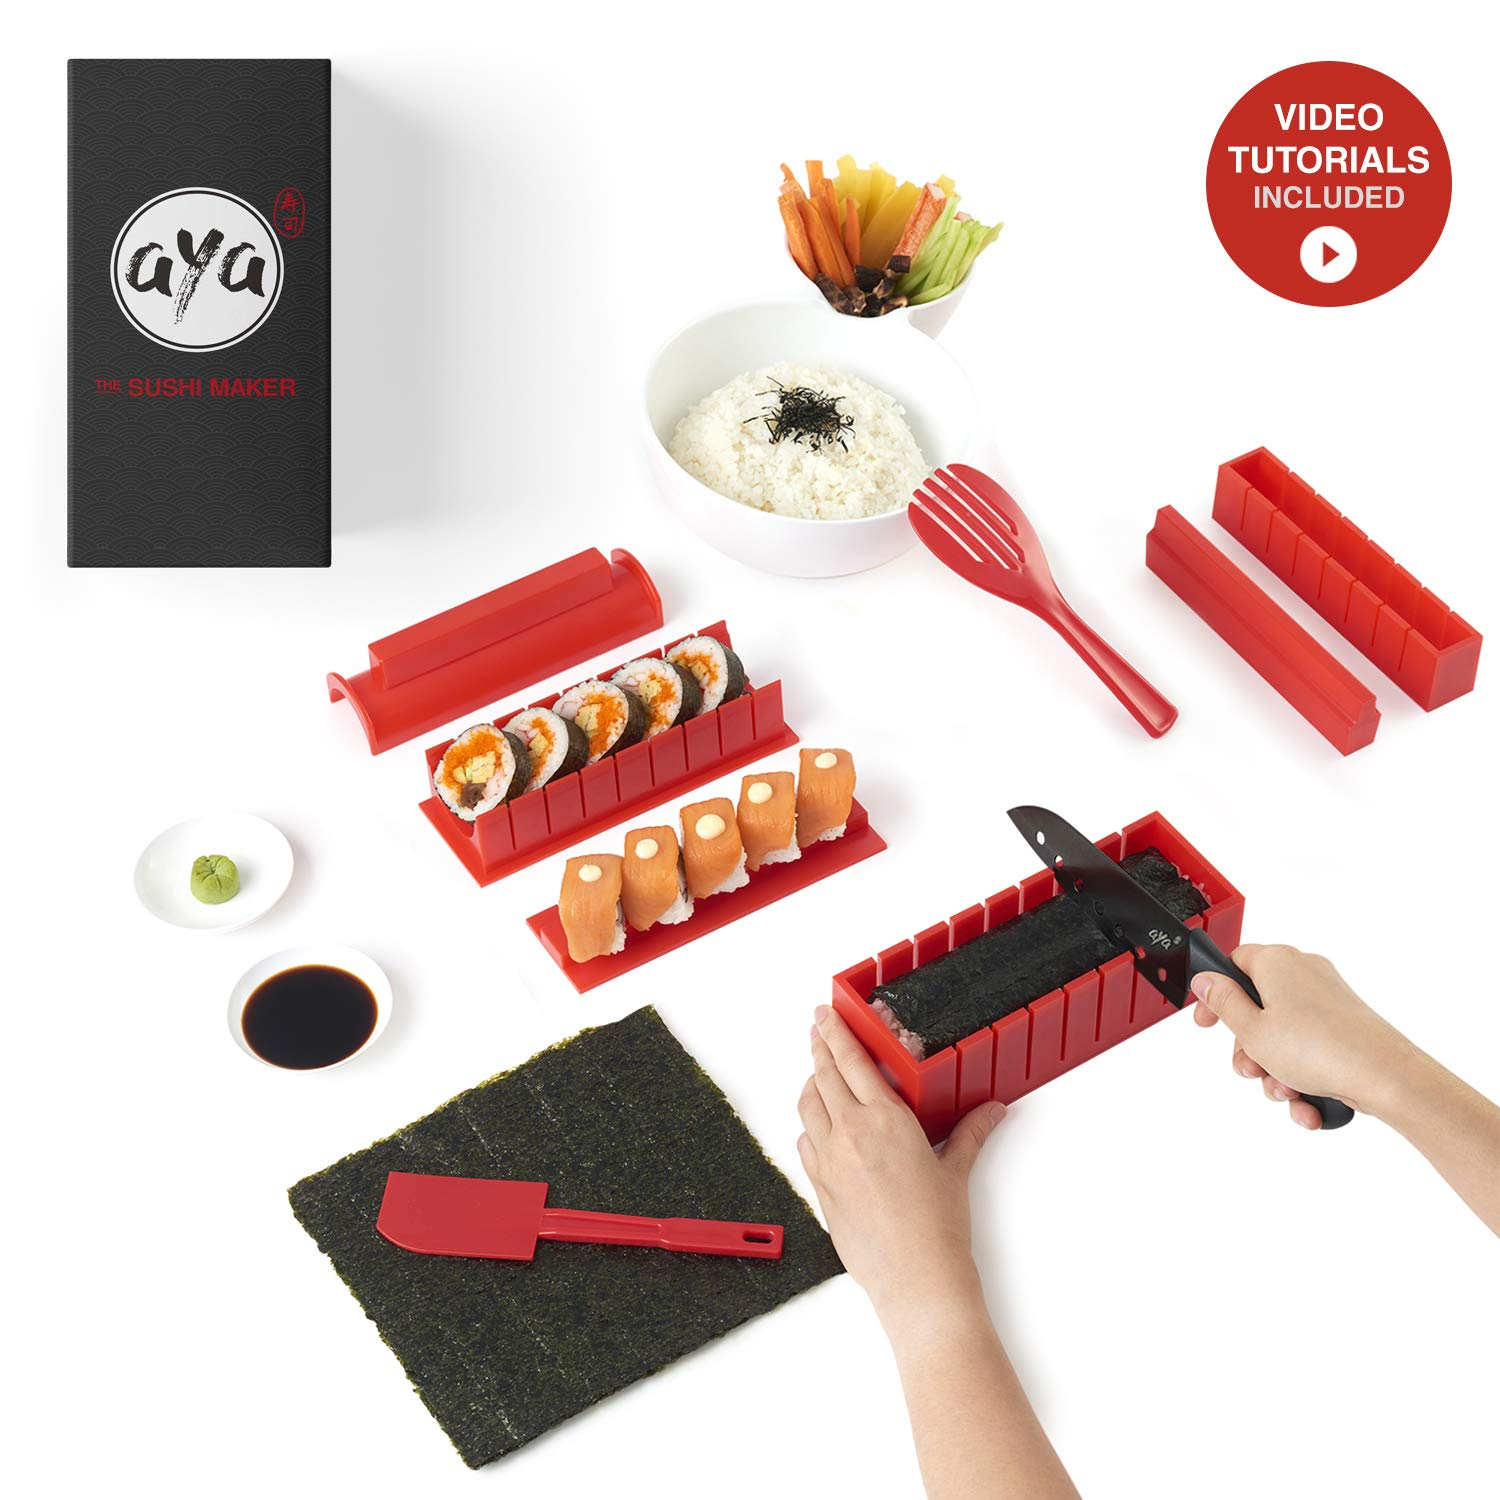 Aya Sushi Making Kit - Original Sushi Maker Deluxe Exclusive Online Video Tutorials Complete with Sushi Knife 11 Piece DIY Sushi Set - Easy and Fun - Sushi Rolls - Maki Rolls by Aya